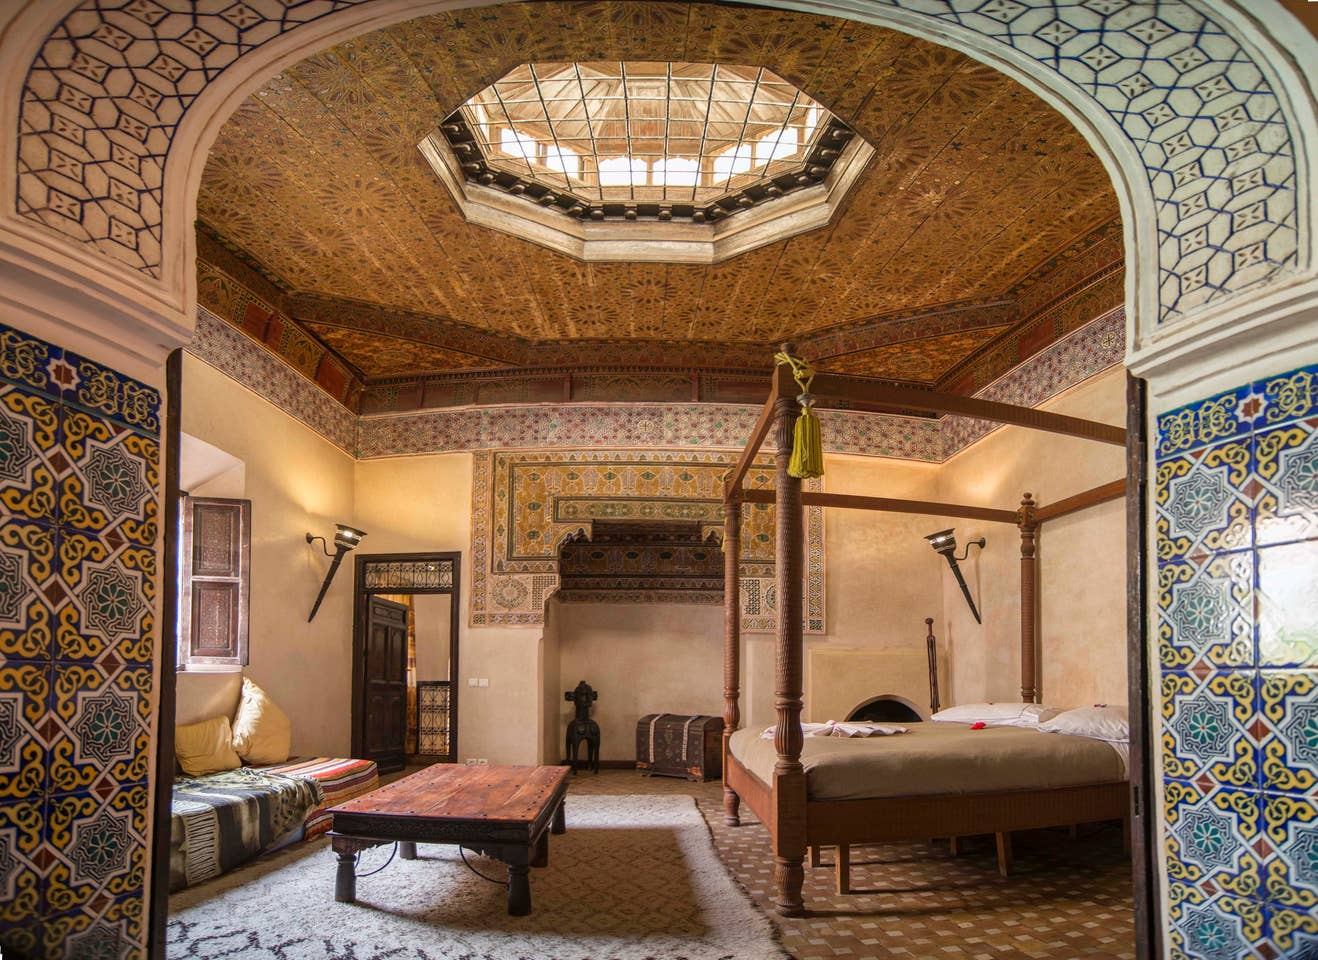 The Cozy Palace Morocco Airbnb